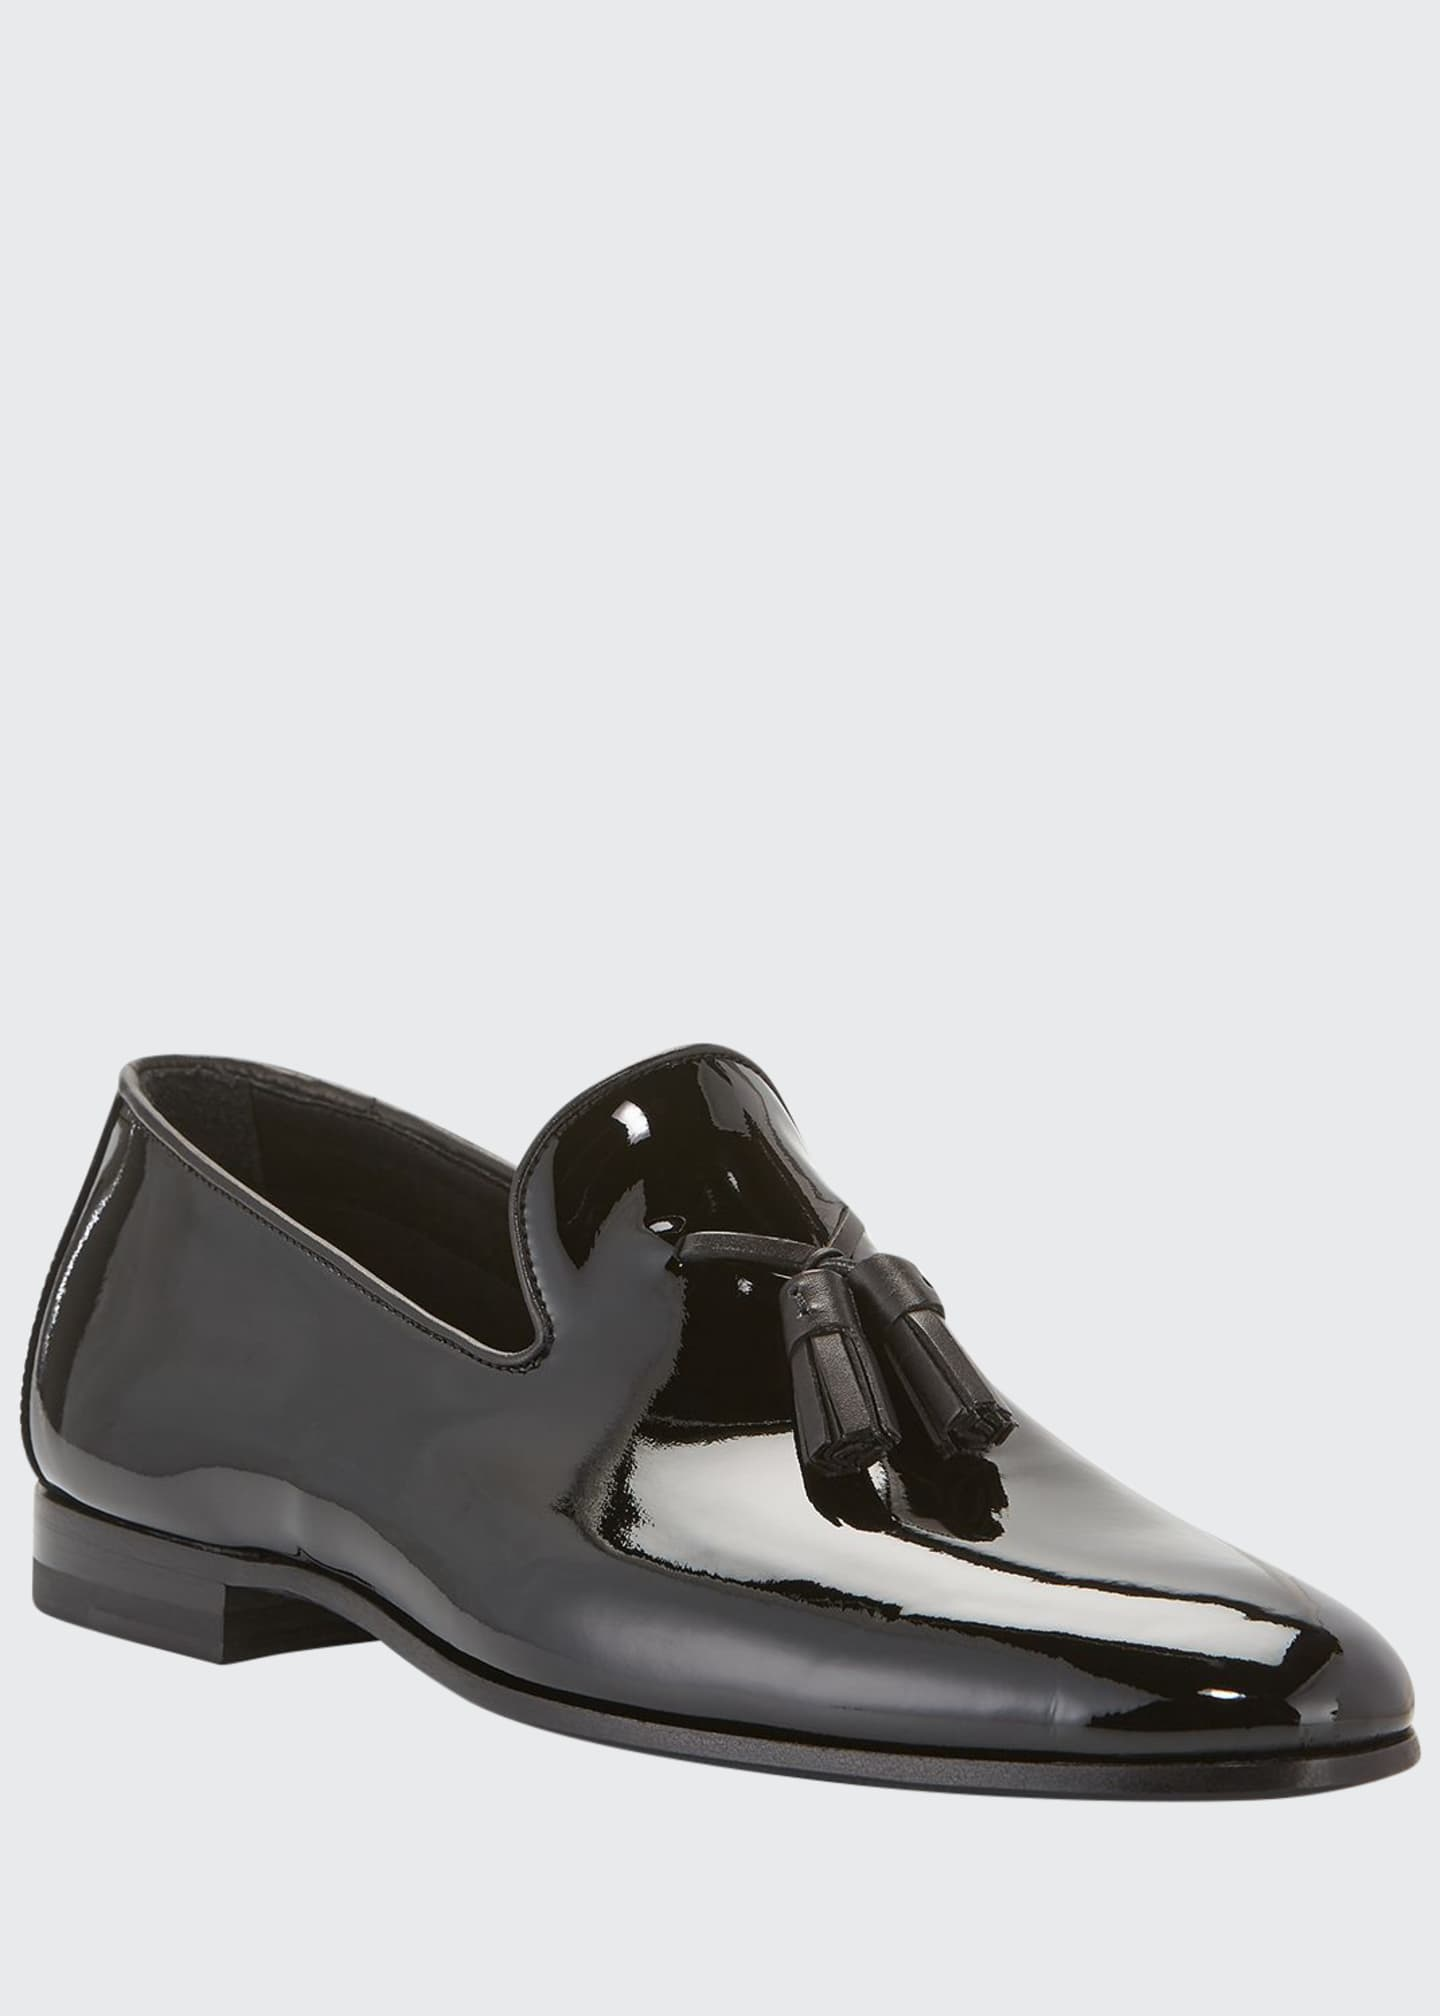 Magnanni for Neiman Marcus Men's Patent Leather Formal